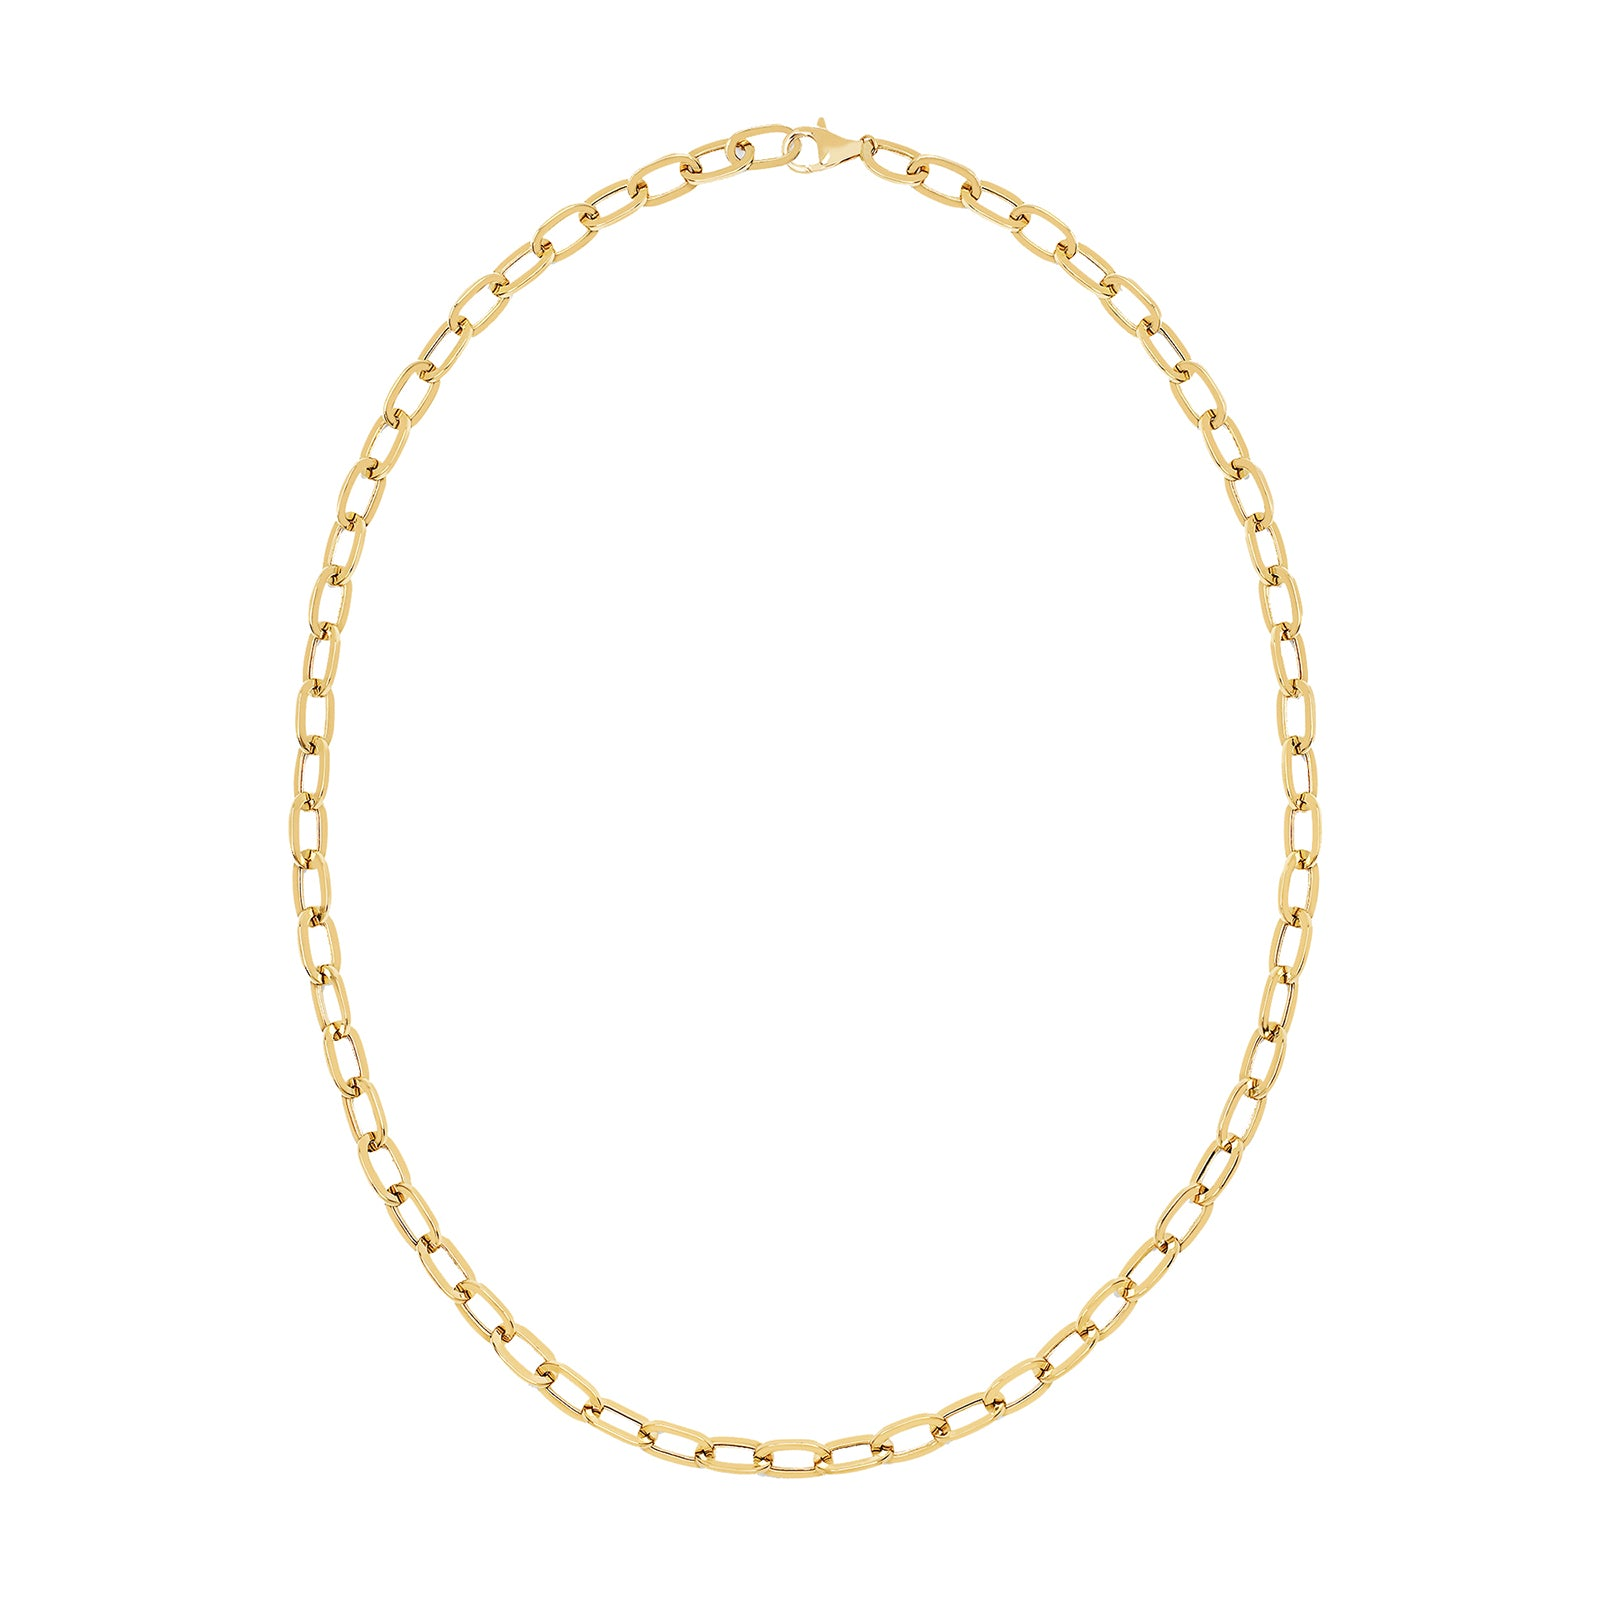 EF Collection Jumbo Link Necklace - Yellow Gold - Necklaces - Broken English Jewelry